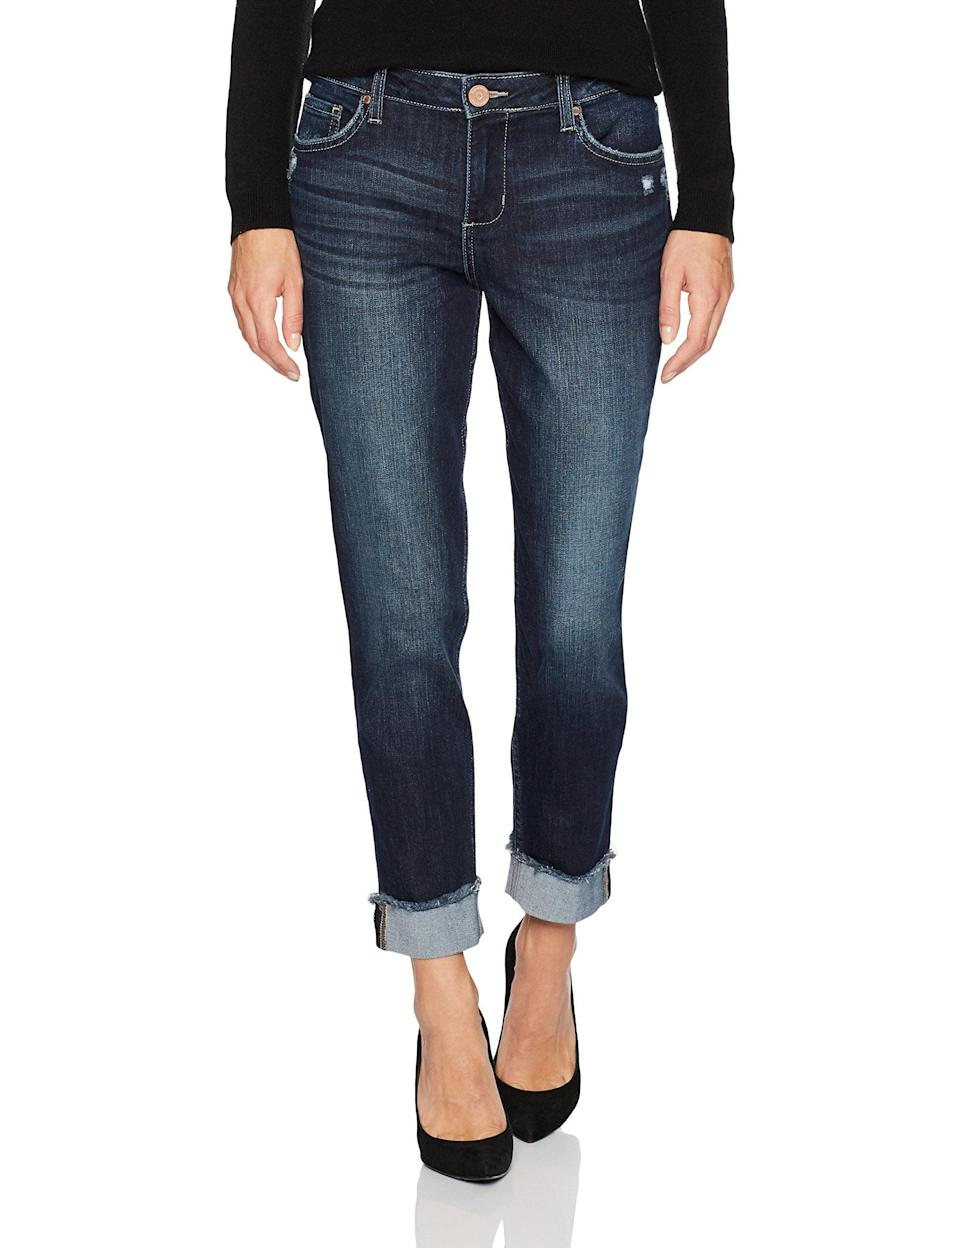 """<br><br><strong>Riders by Lee Indigo</strong> Fringe Cuff Boyfriend Jean, $, available at <a href=""""https://www.amazon.com/Riders-Lee-Indigo-Womens-Boyfriend/dp/B0733S9L16"""" rel=""""nofollow noopener"""" target=""""_blank"""" data-ylk=""""slk:Amazon"""" class=""""link rapid-noclick-resp"""">Amazon</a>"""